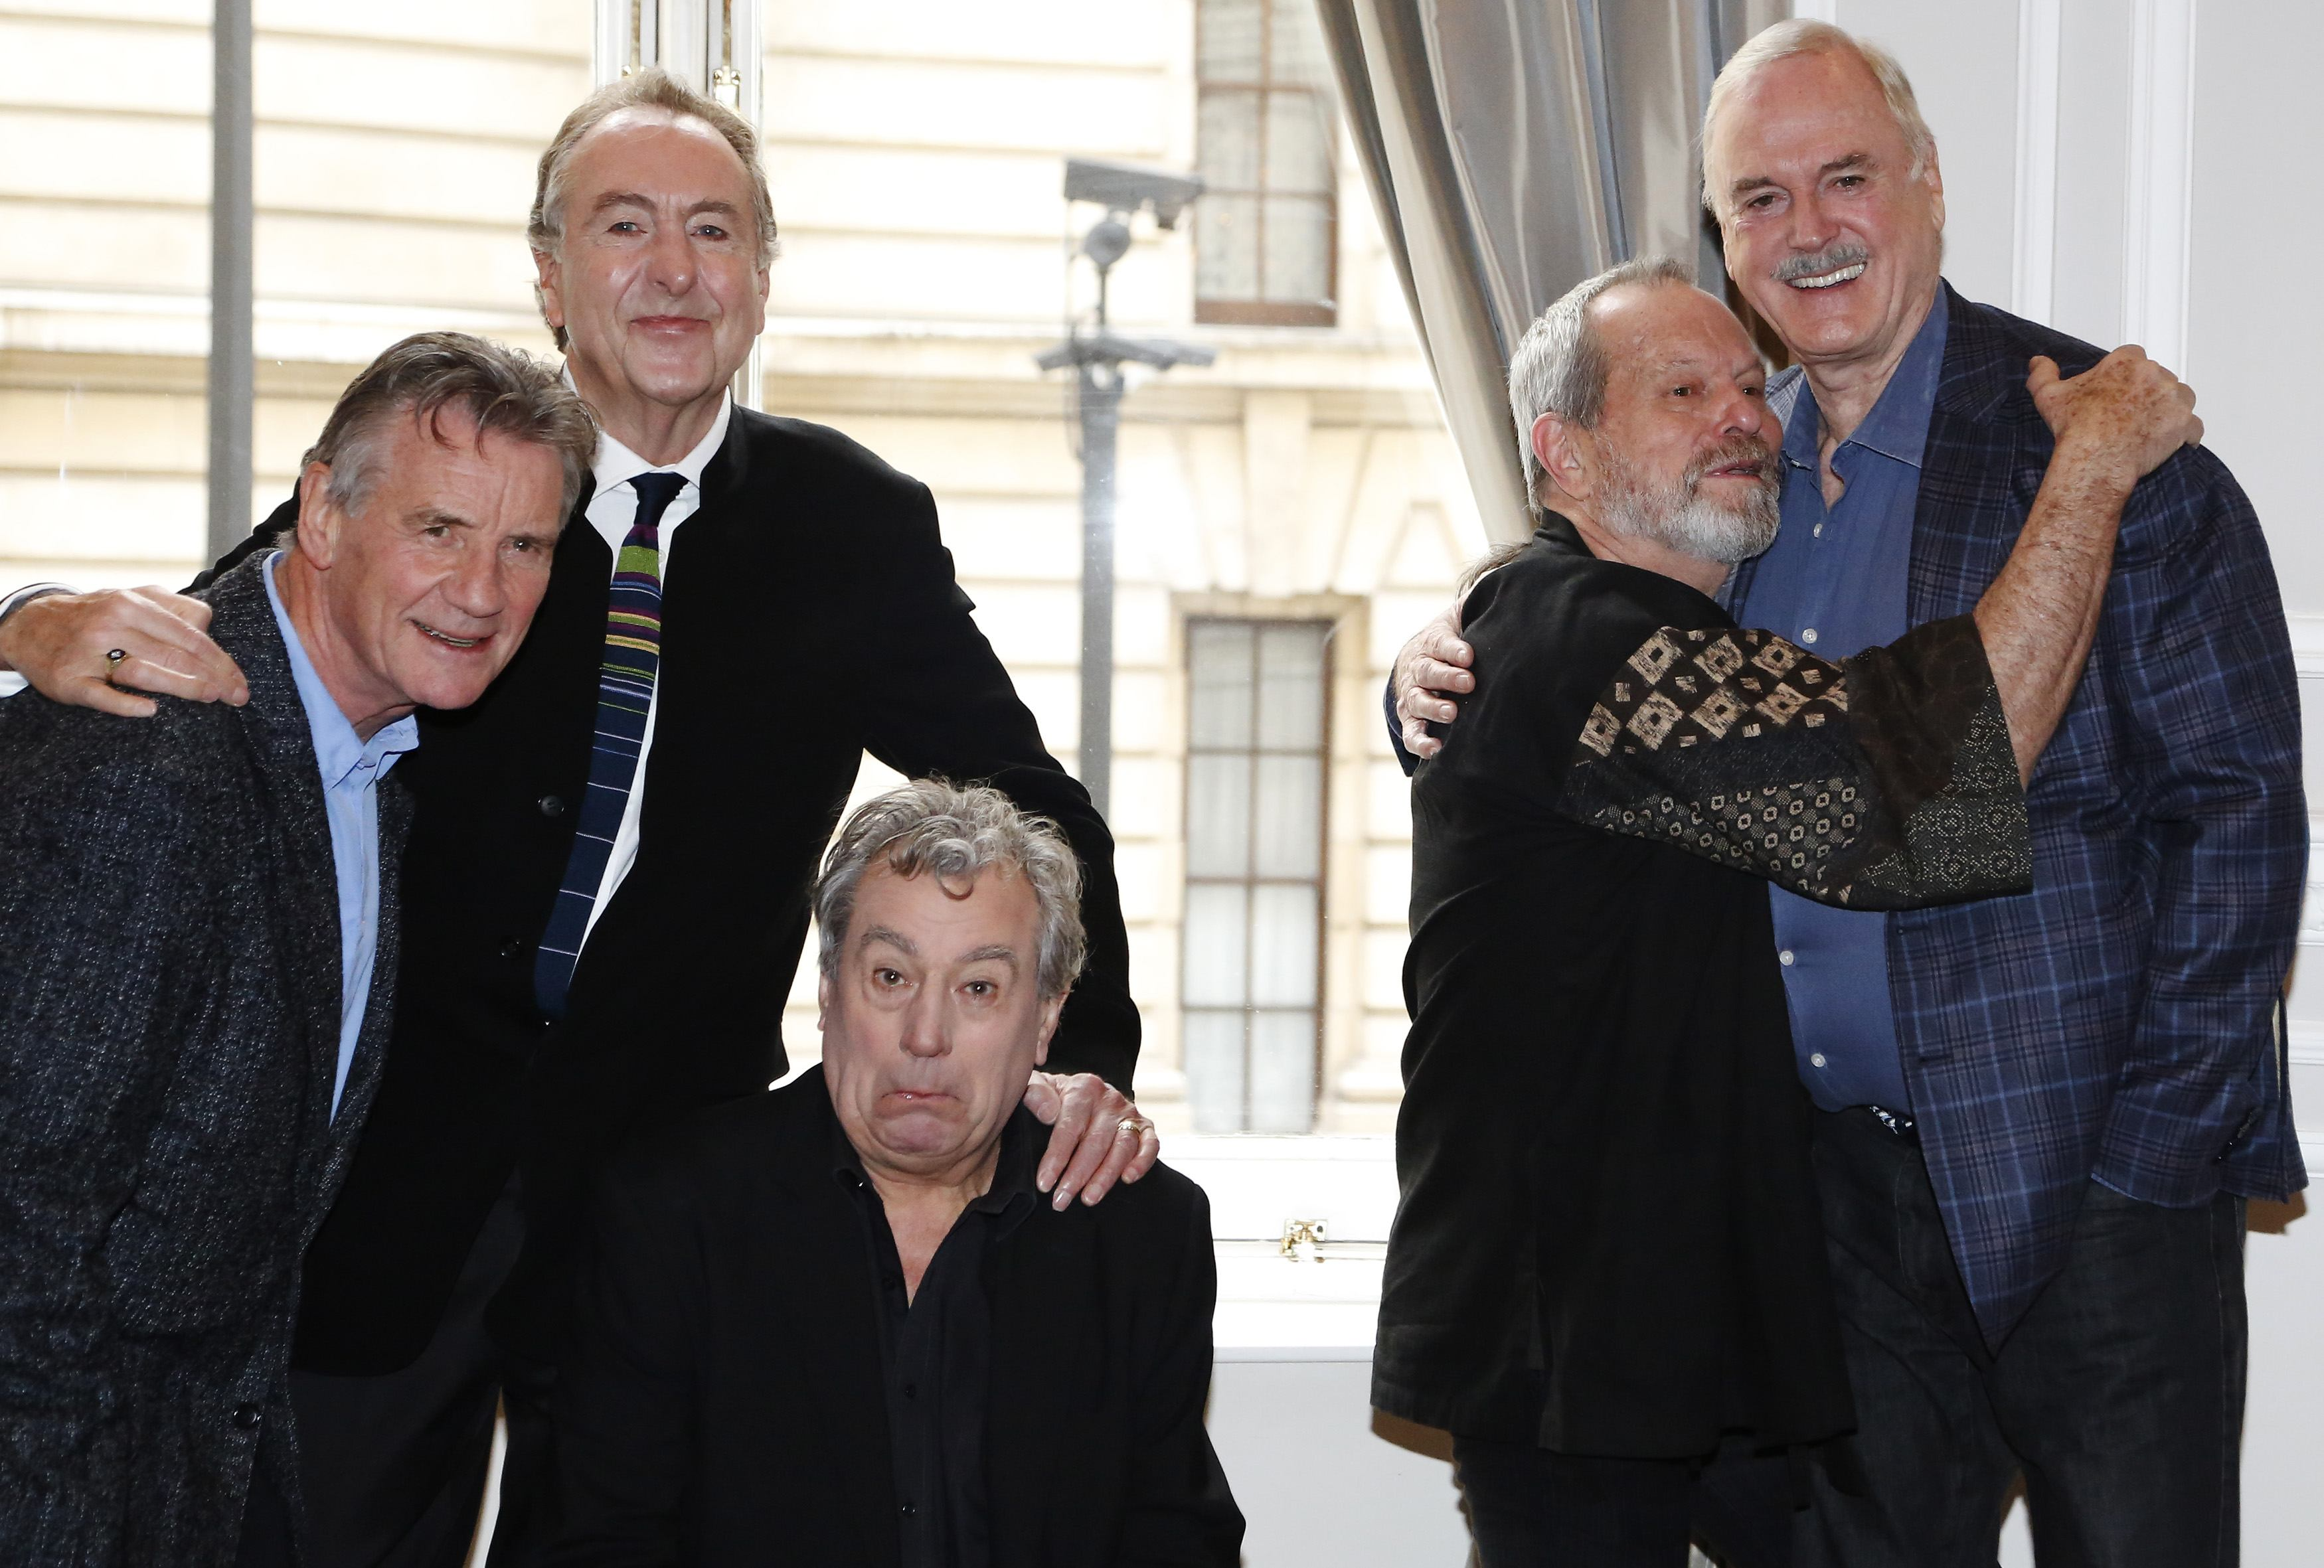 Monty Python reunion: 8 of the silliest jokes from the press conference